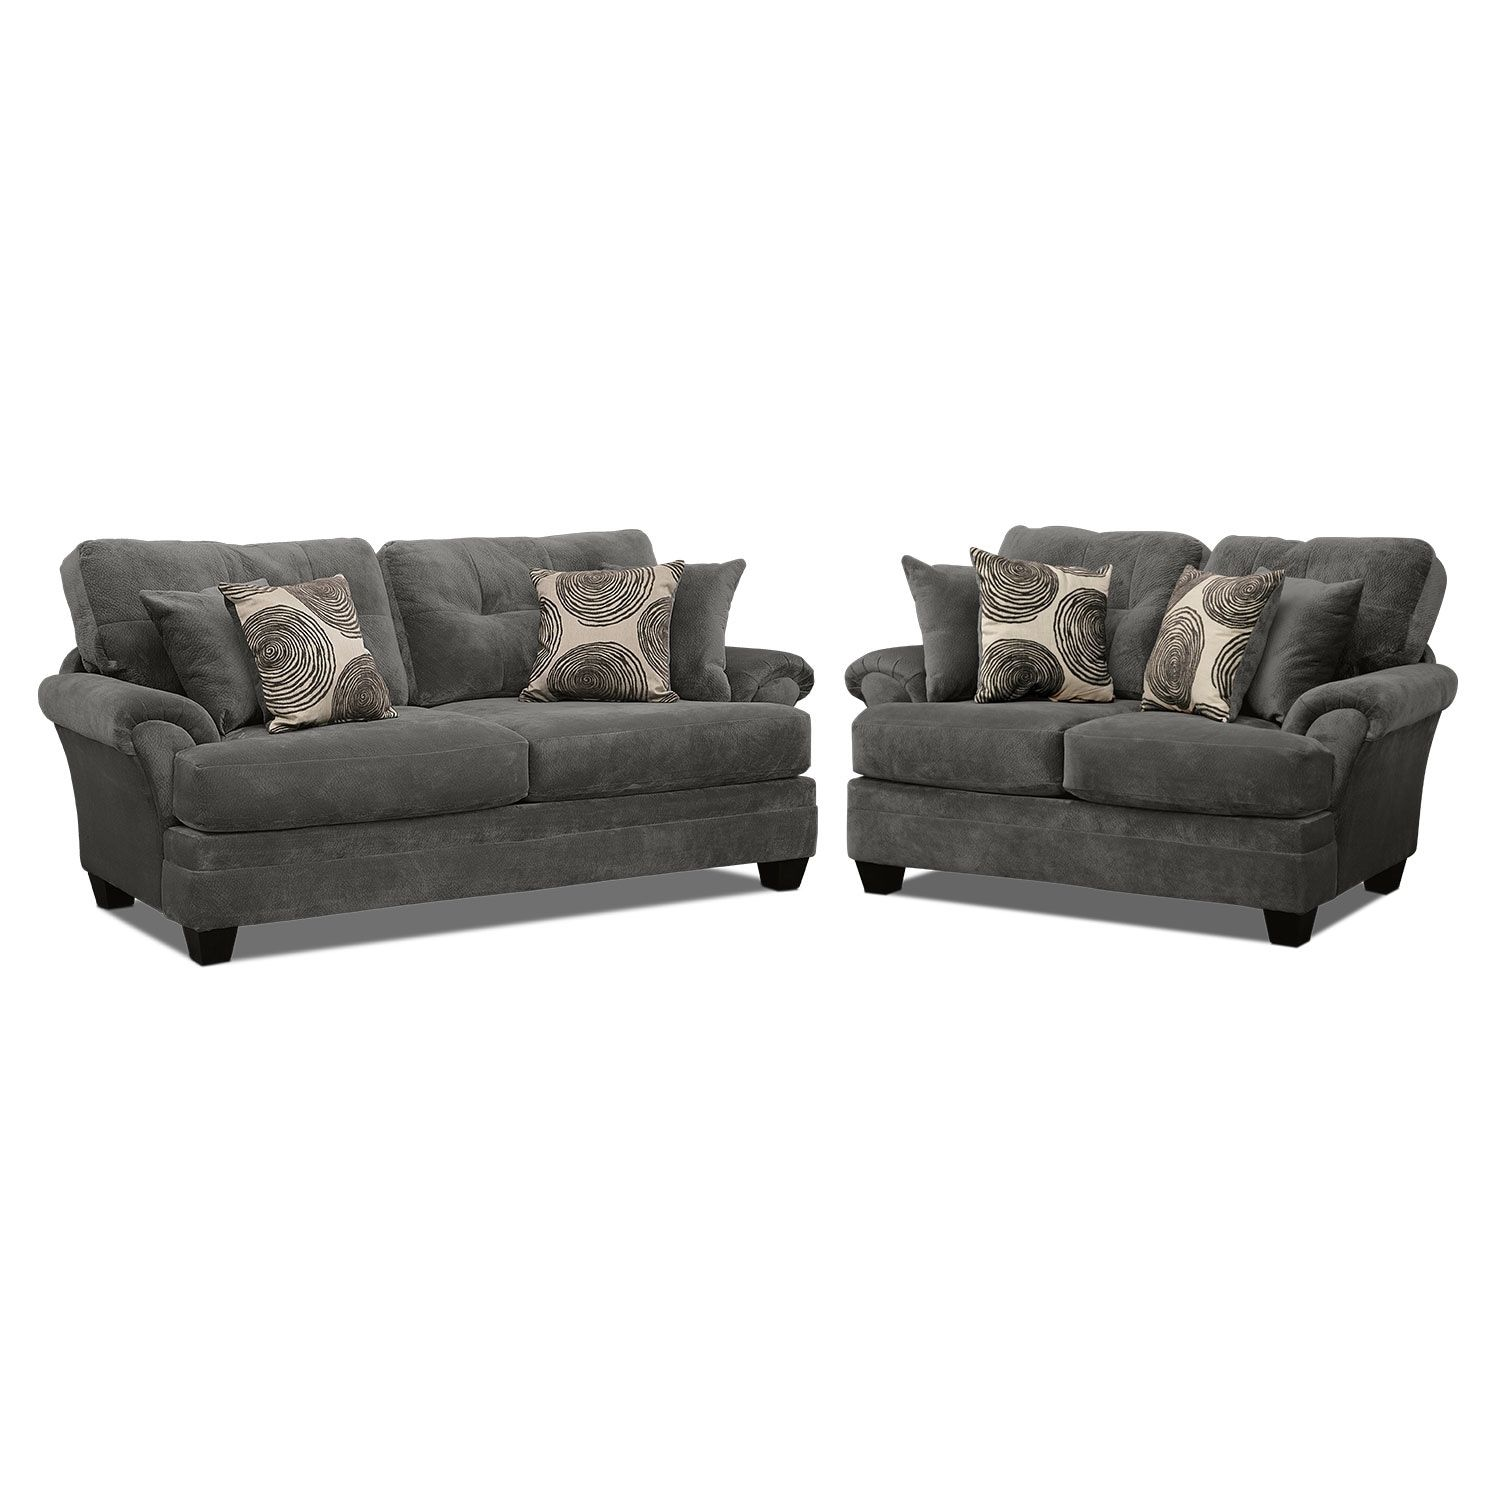 Cordelle Sofa And Loveseat Set Value City Furniture And Mattresses Sofa And Loveseat Set Dining Room Chair Cushions Furniture